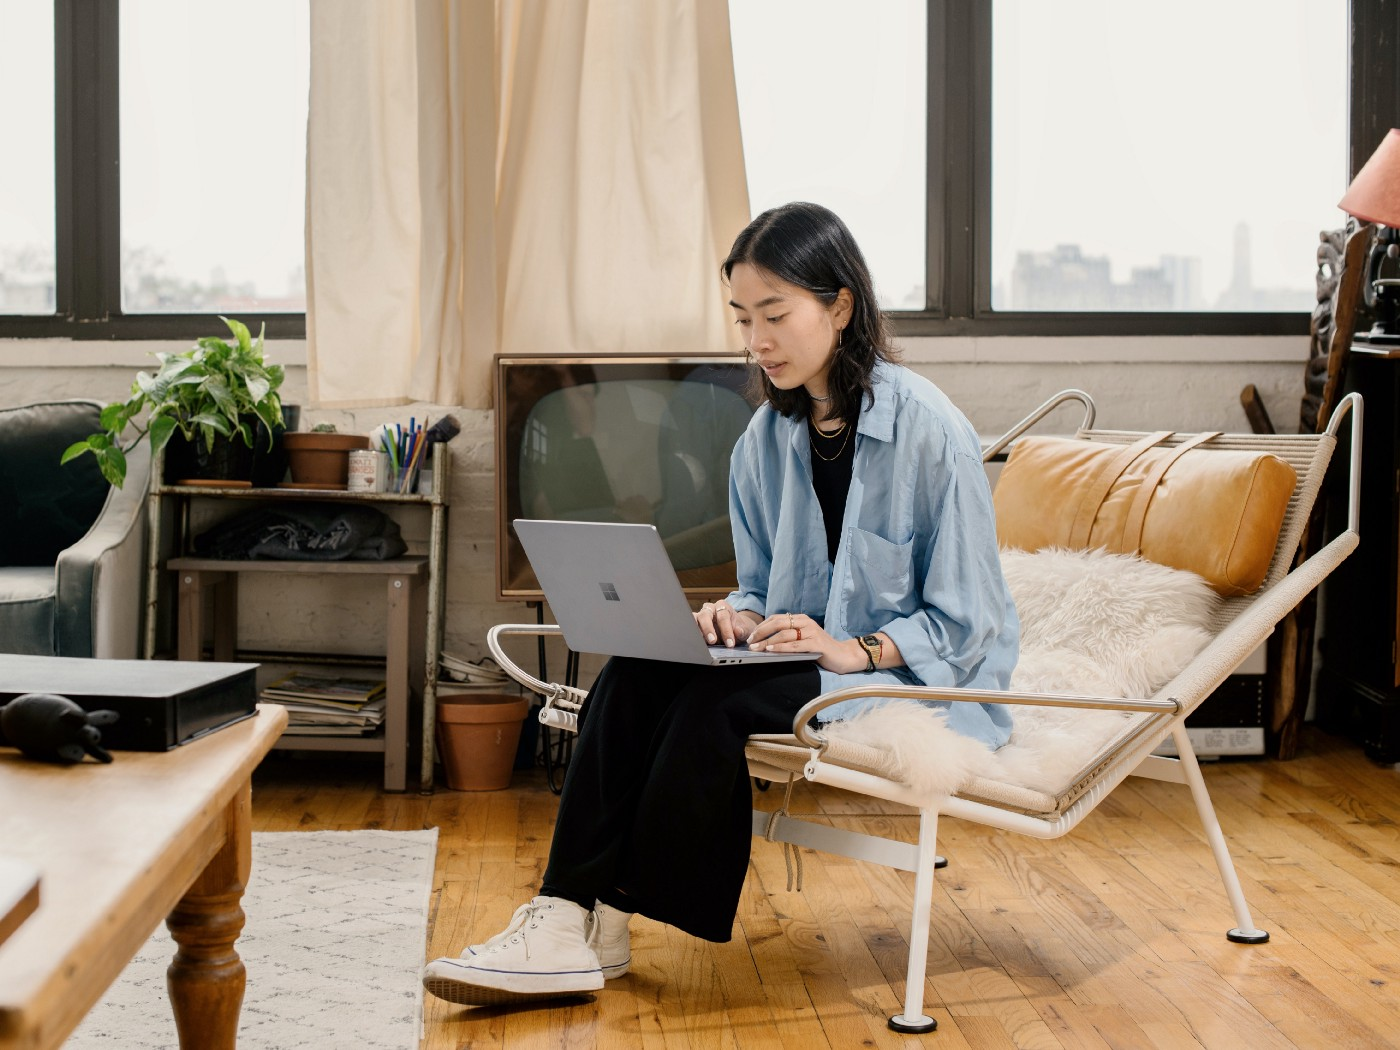 Girl with black hair wits in a chair with a fuzzy pillow while working on her laptop.